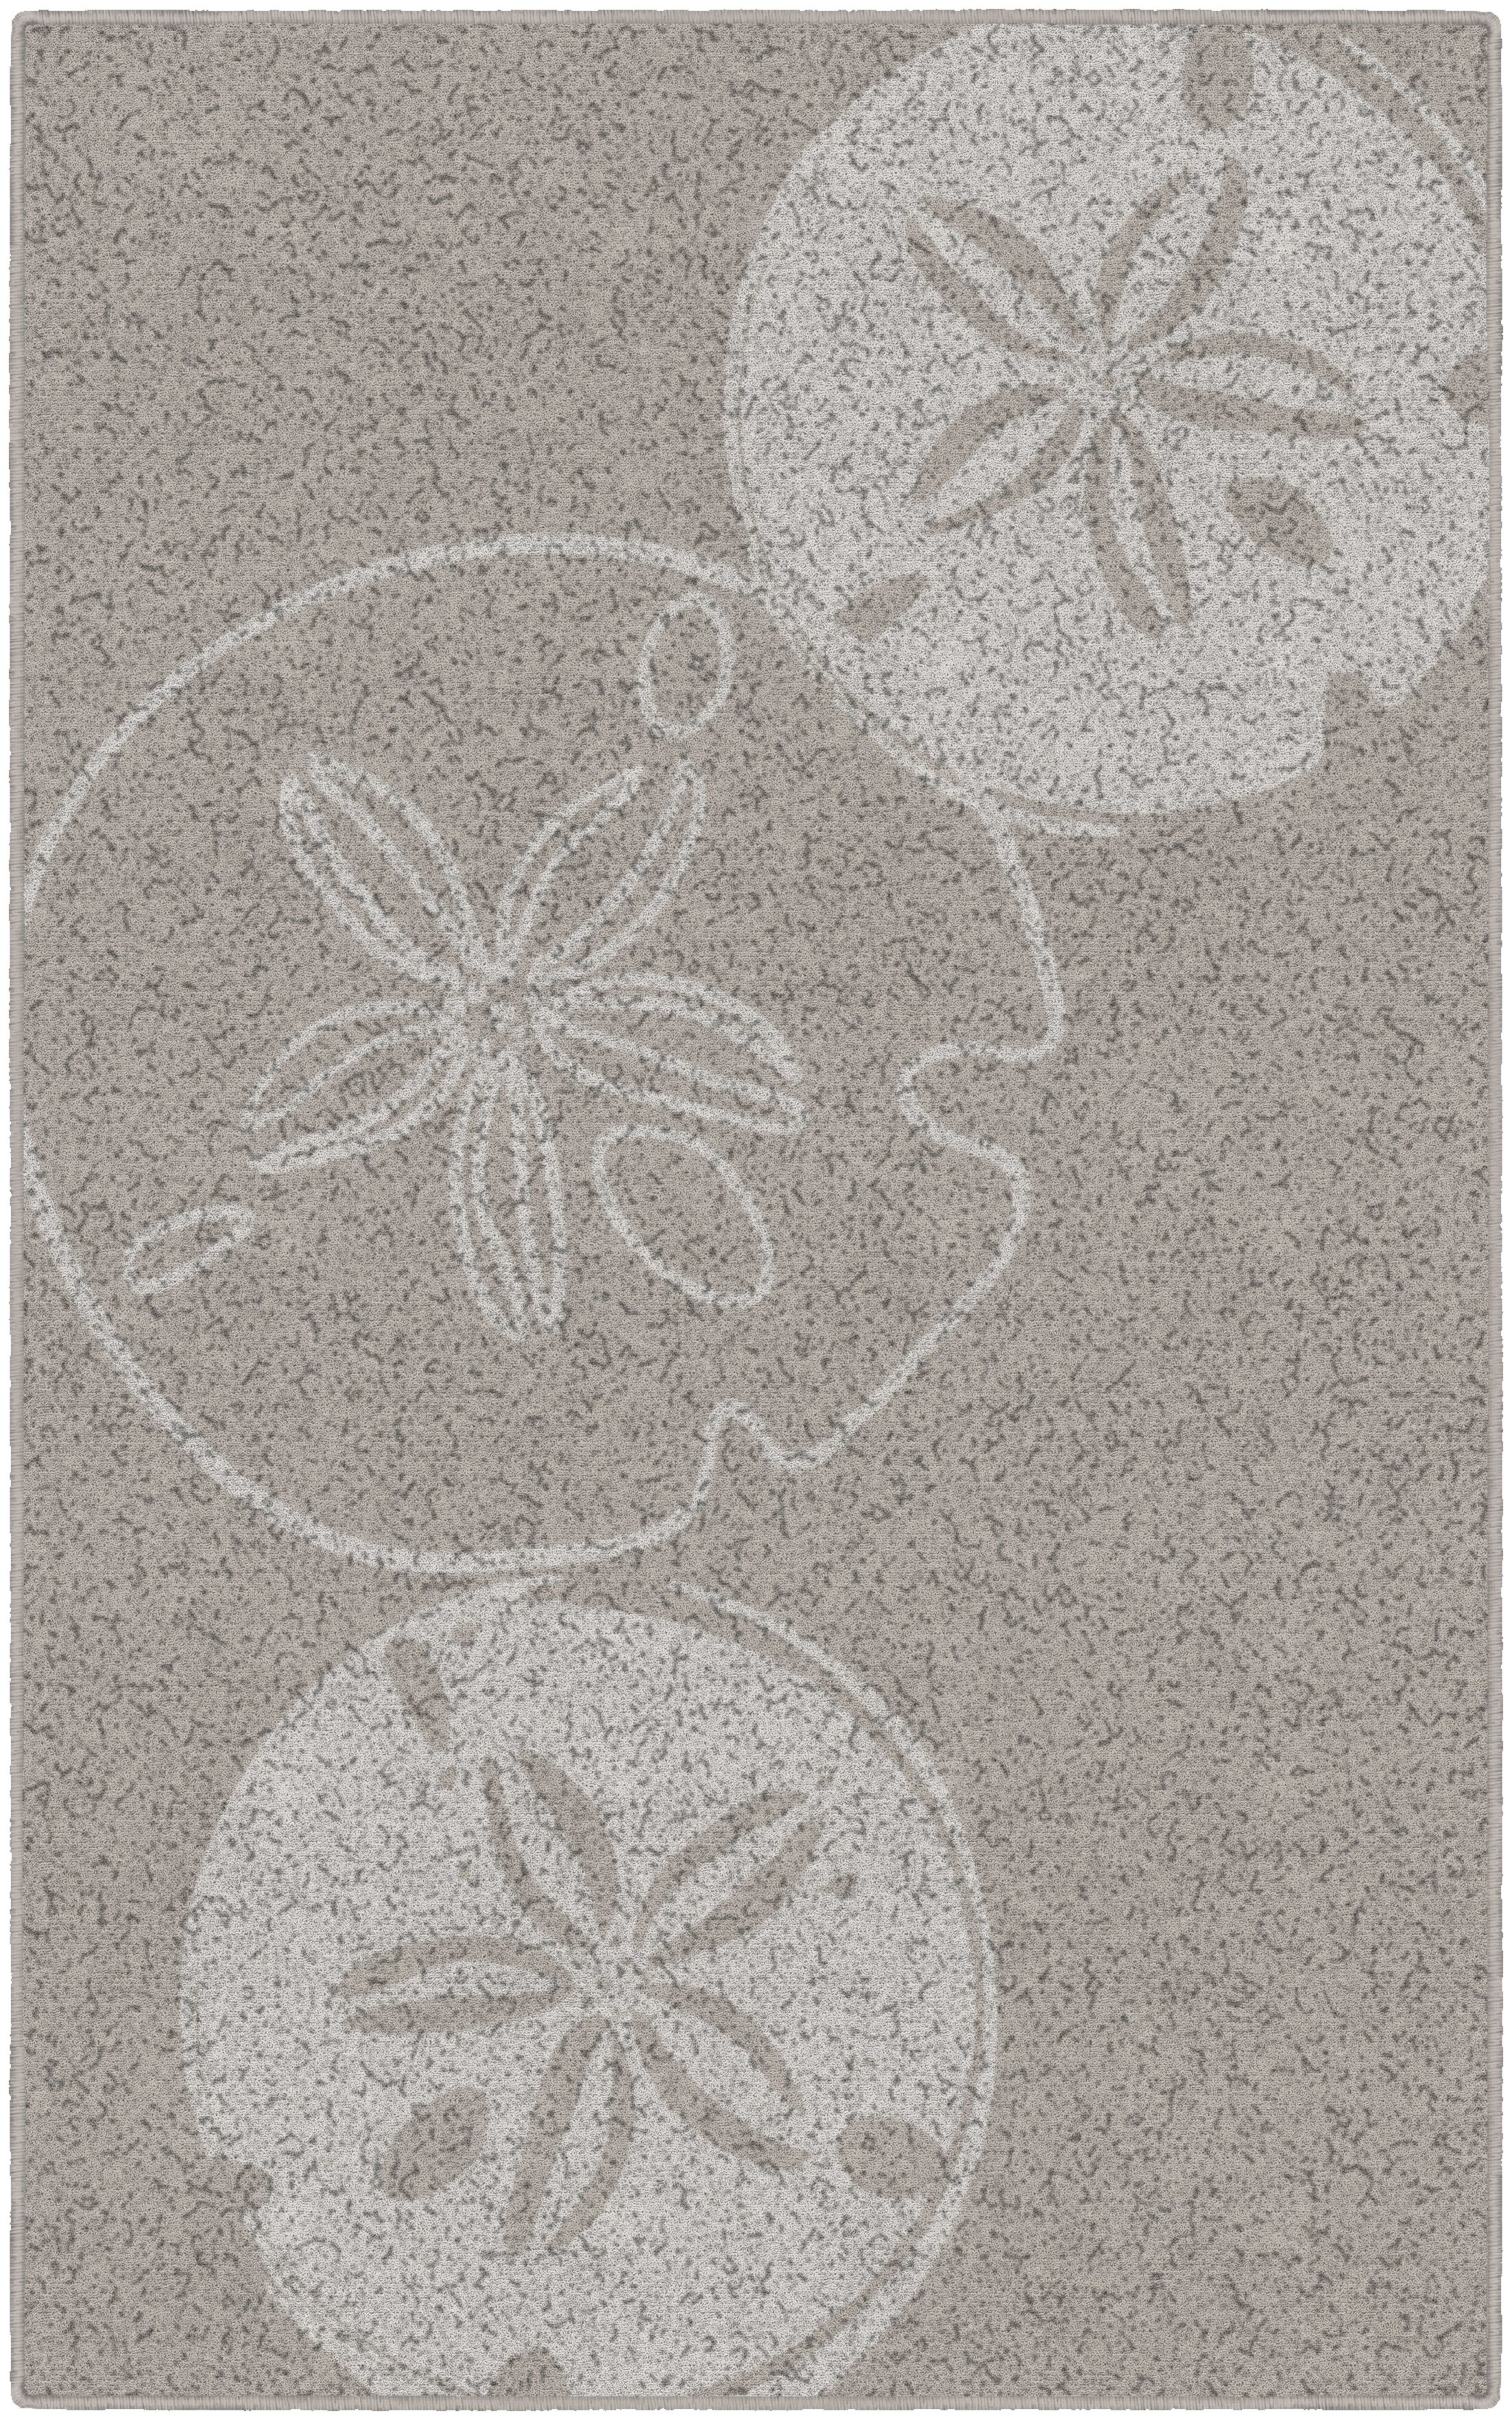 Chaves Sand Dollars Neutral Beach Beige Area Rug Rug Size: Rectangle 5' x 8'